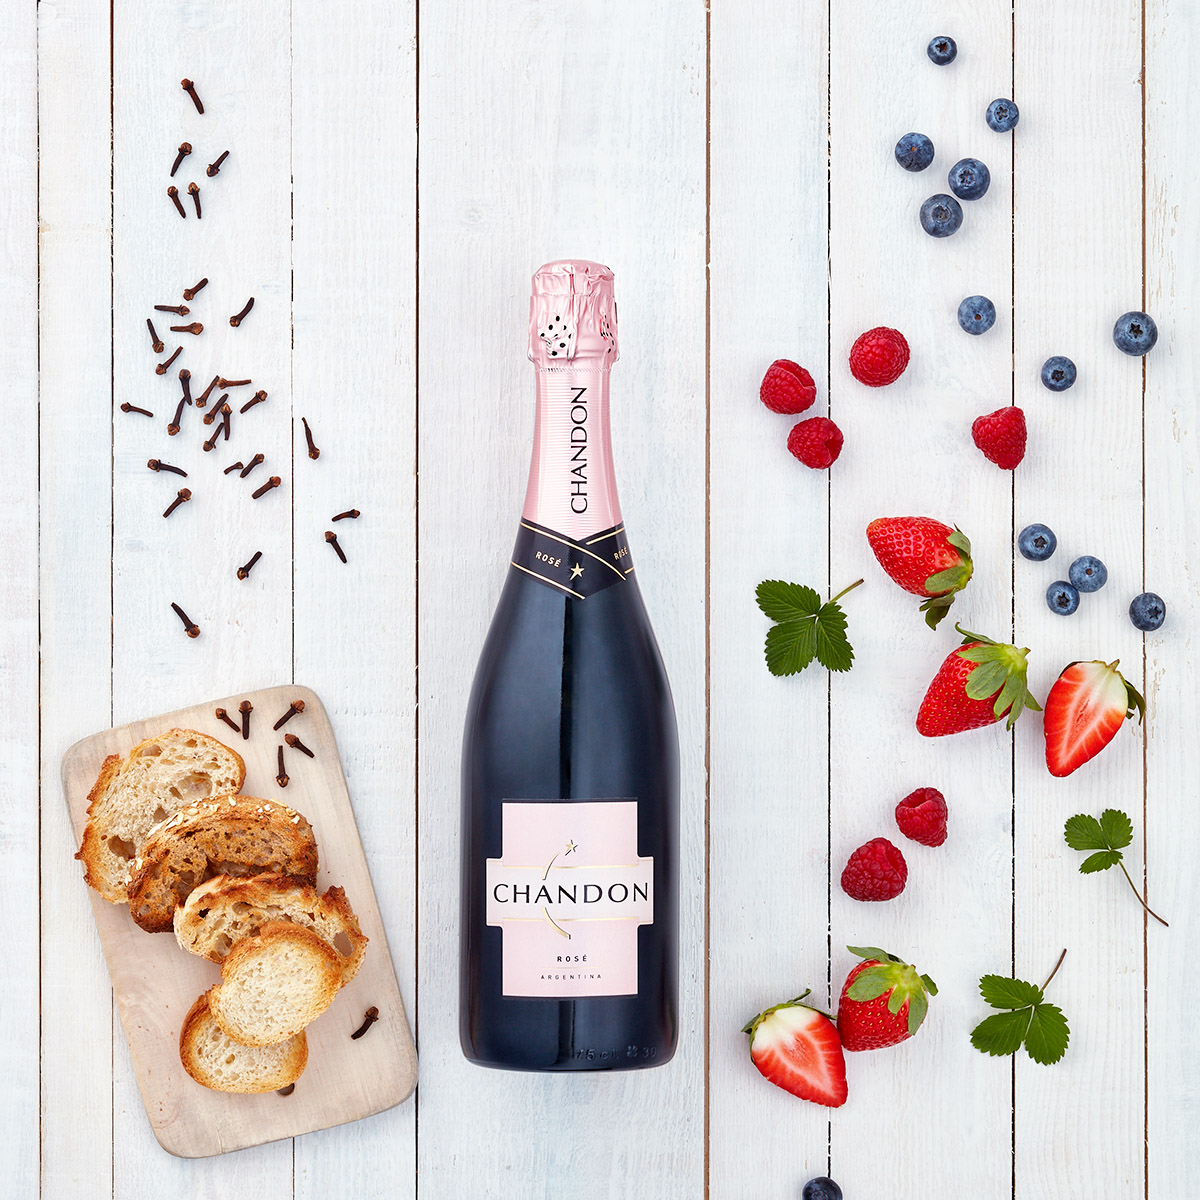 jacquet_bev_chandon_rose